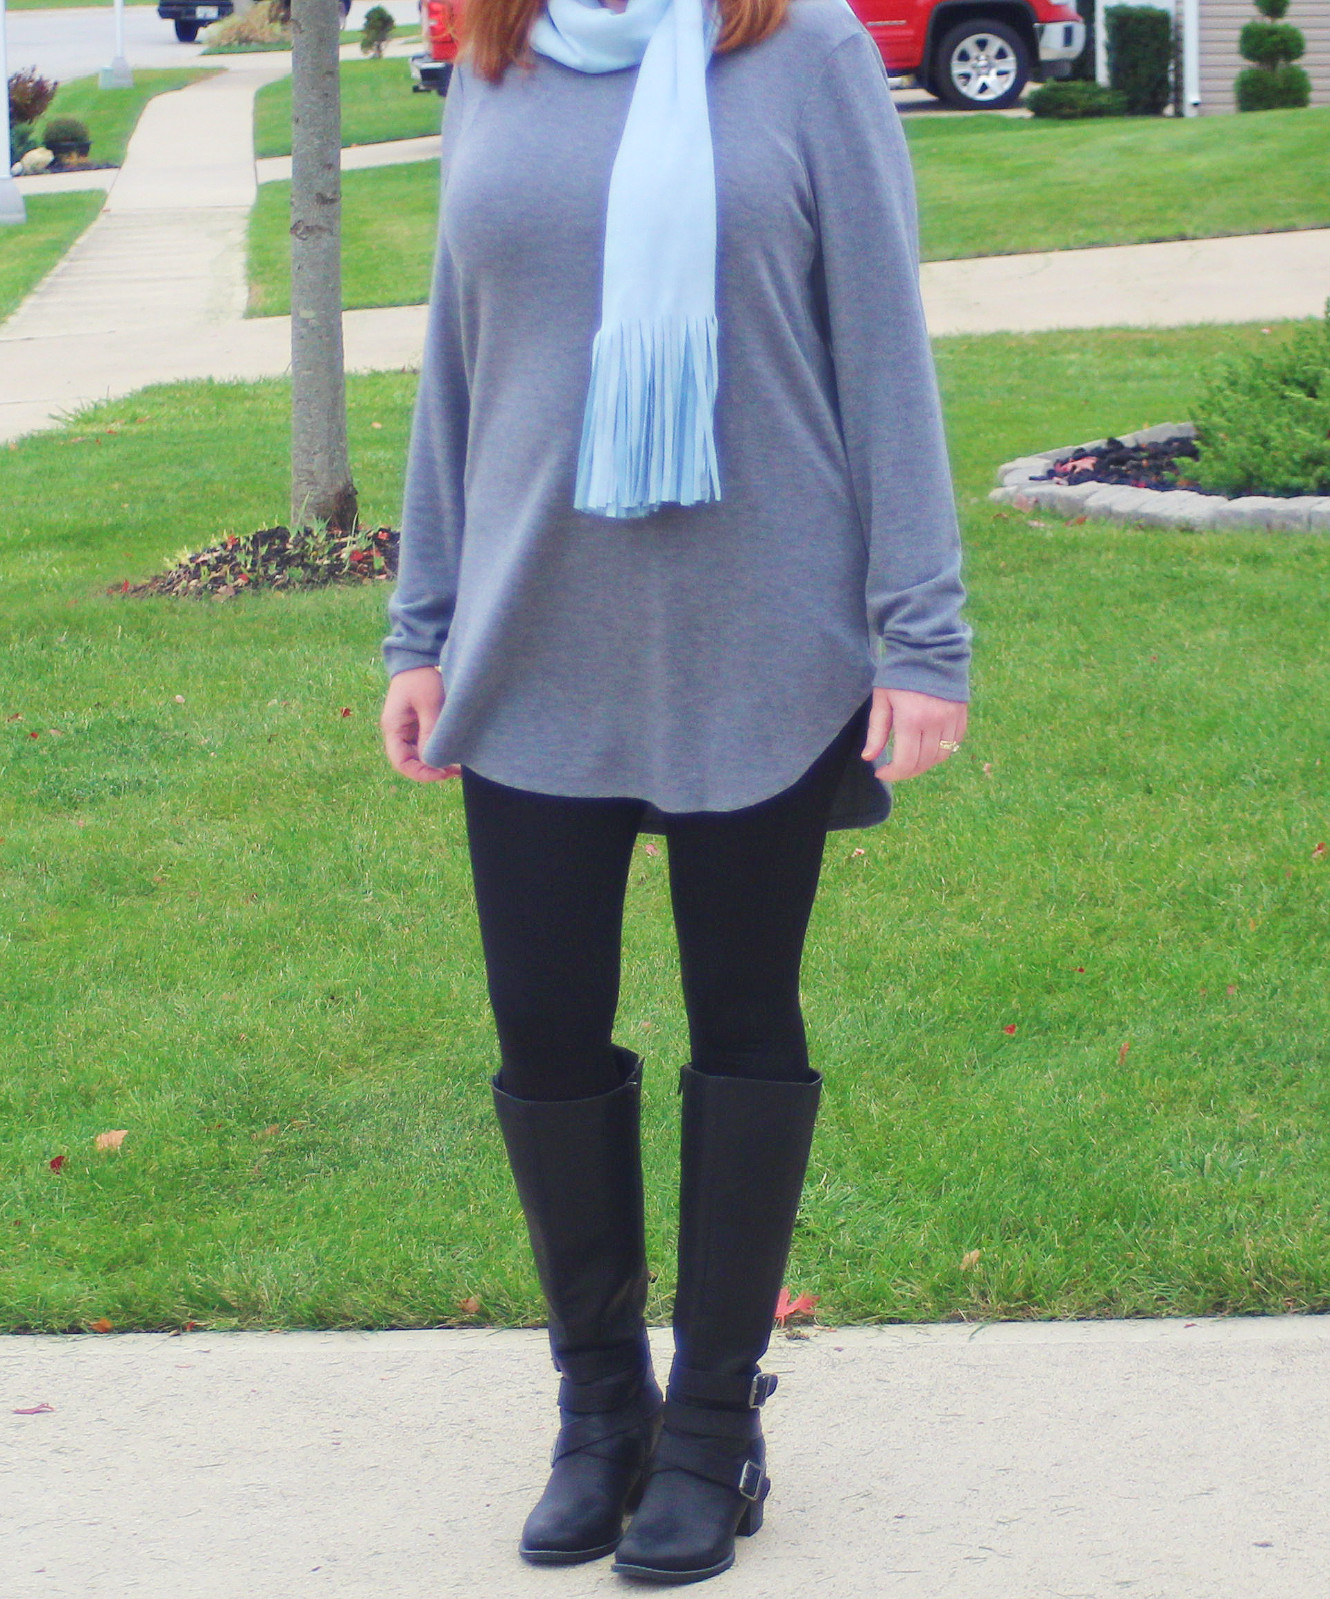 Scarf, Tunic, And Black Leggings